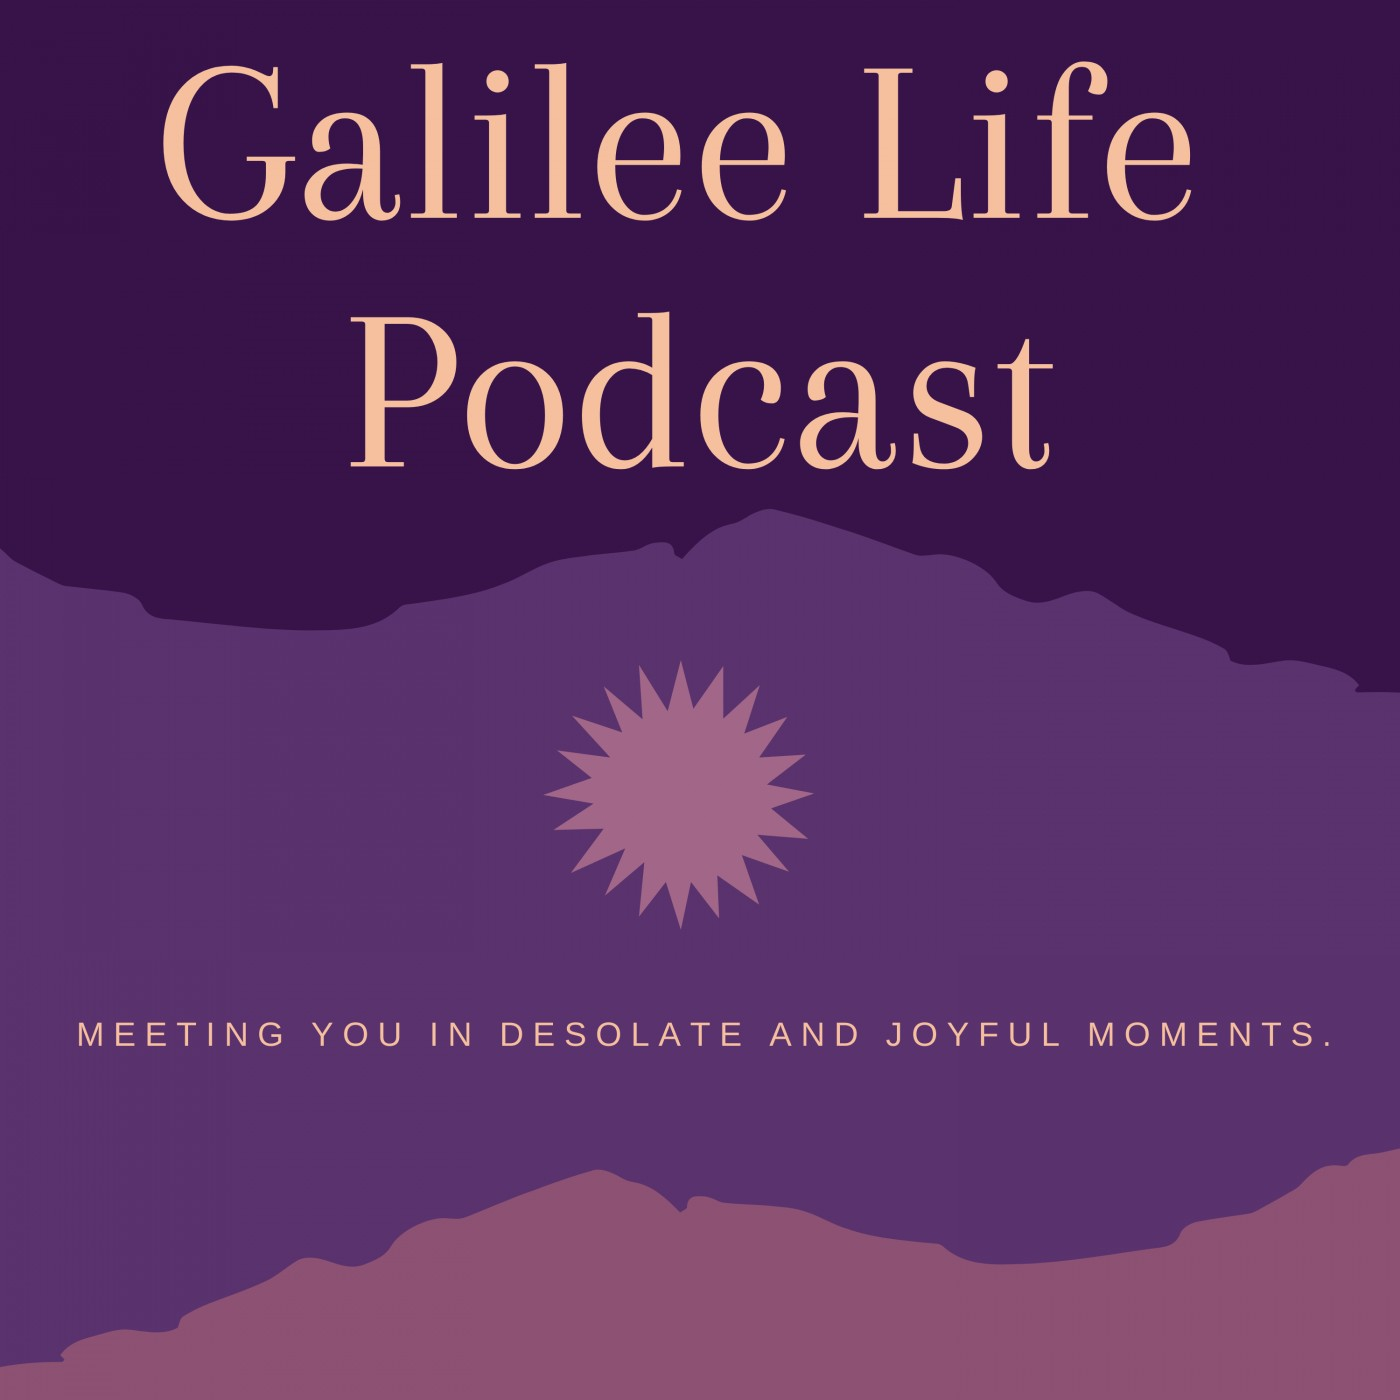 Galilee Life Podcast